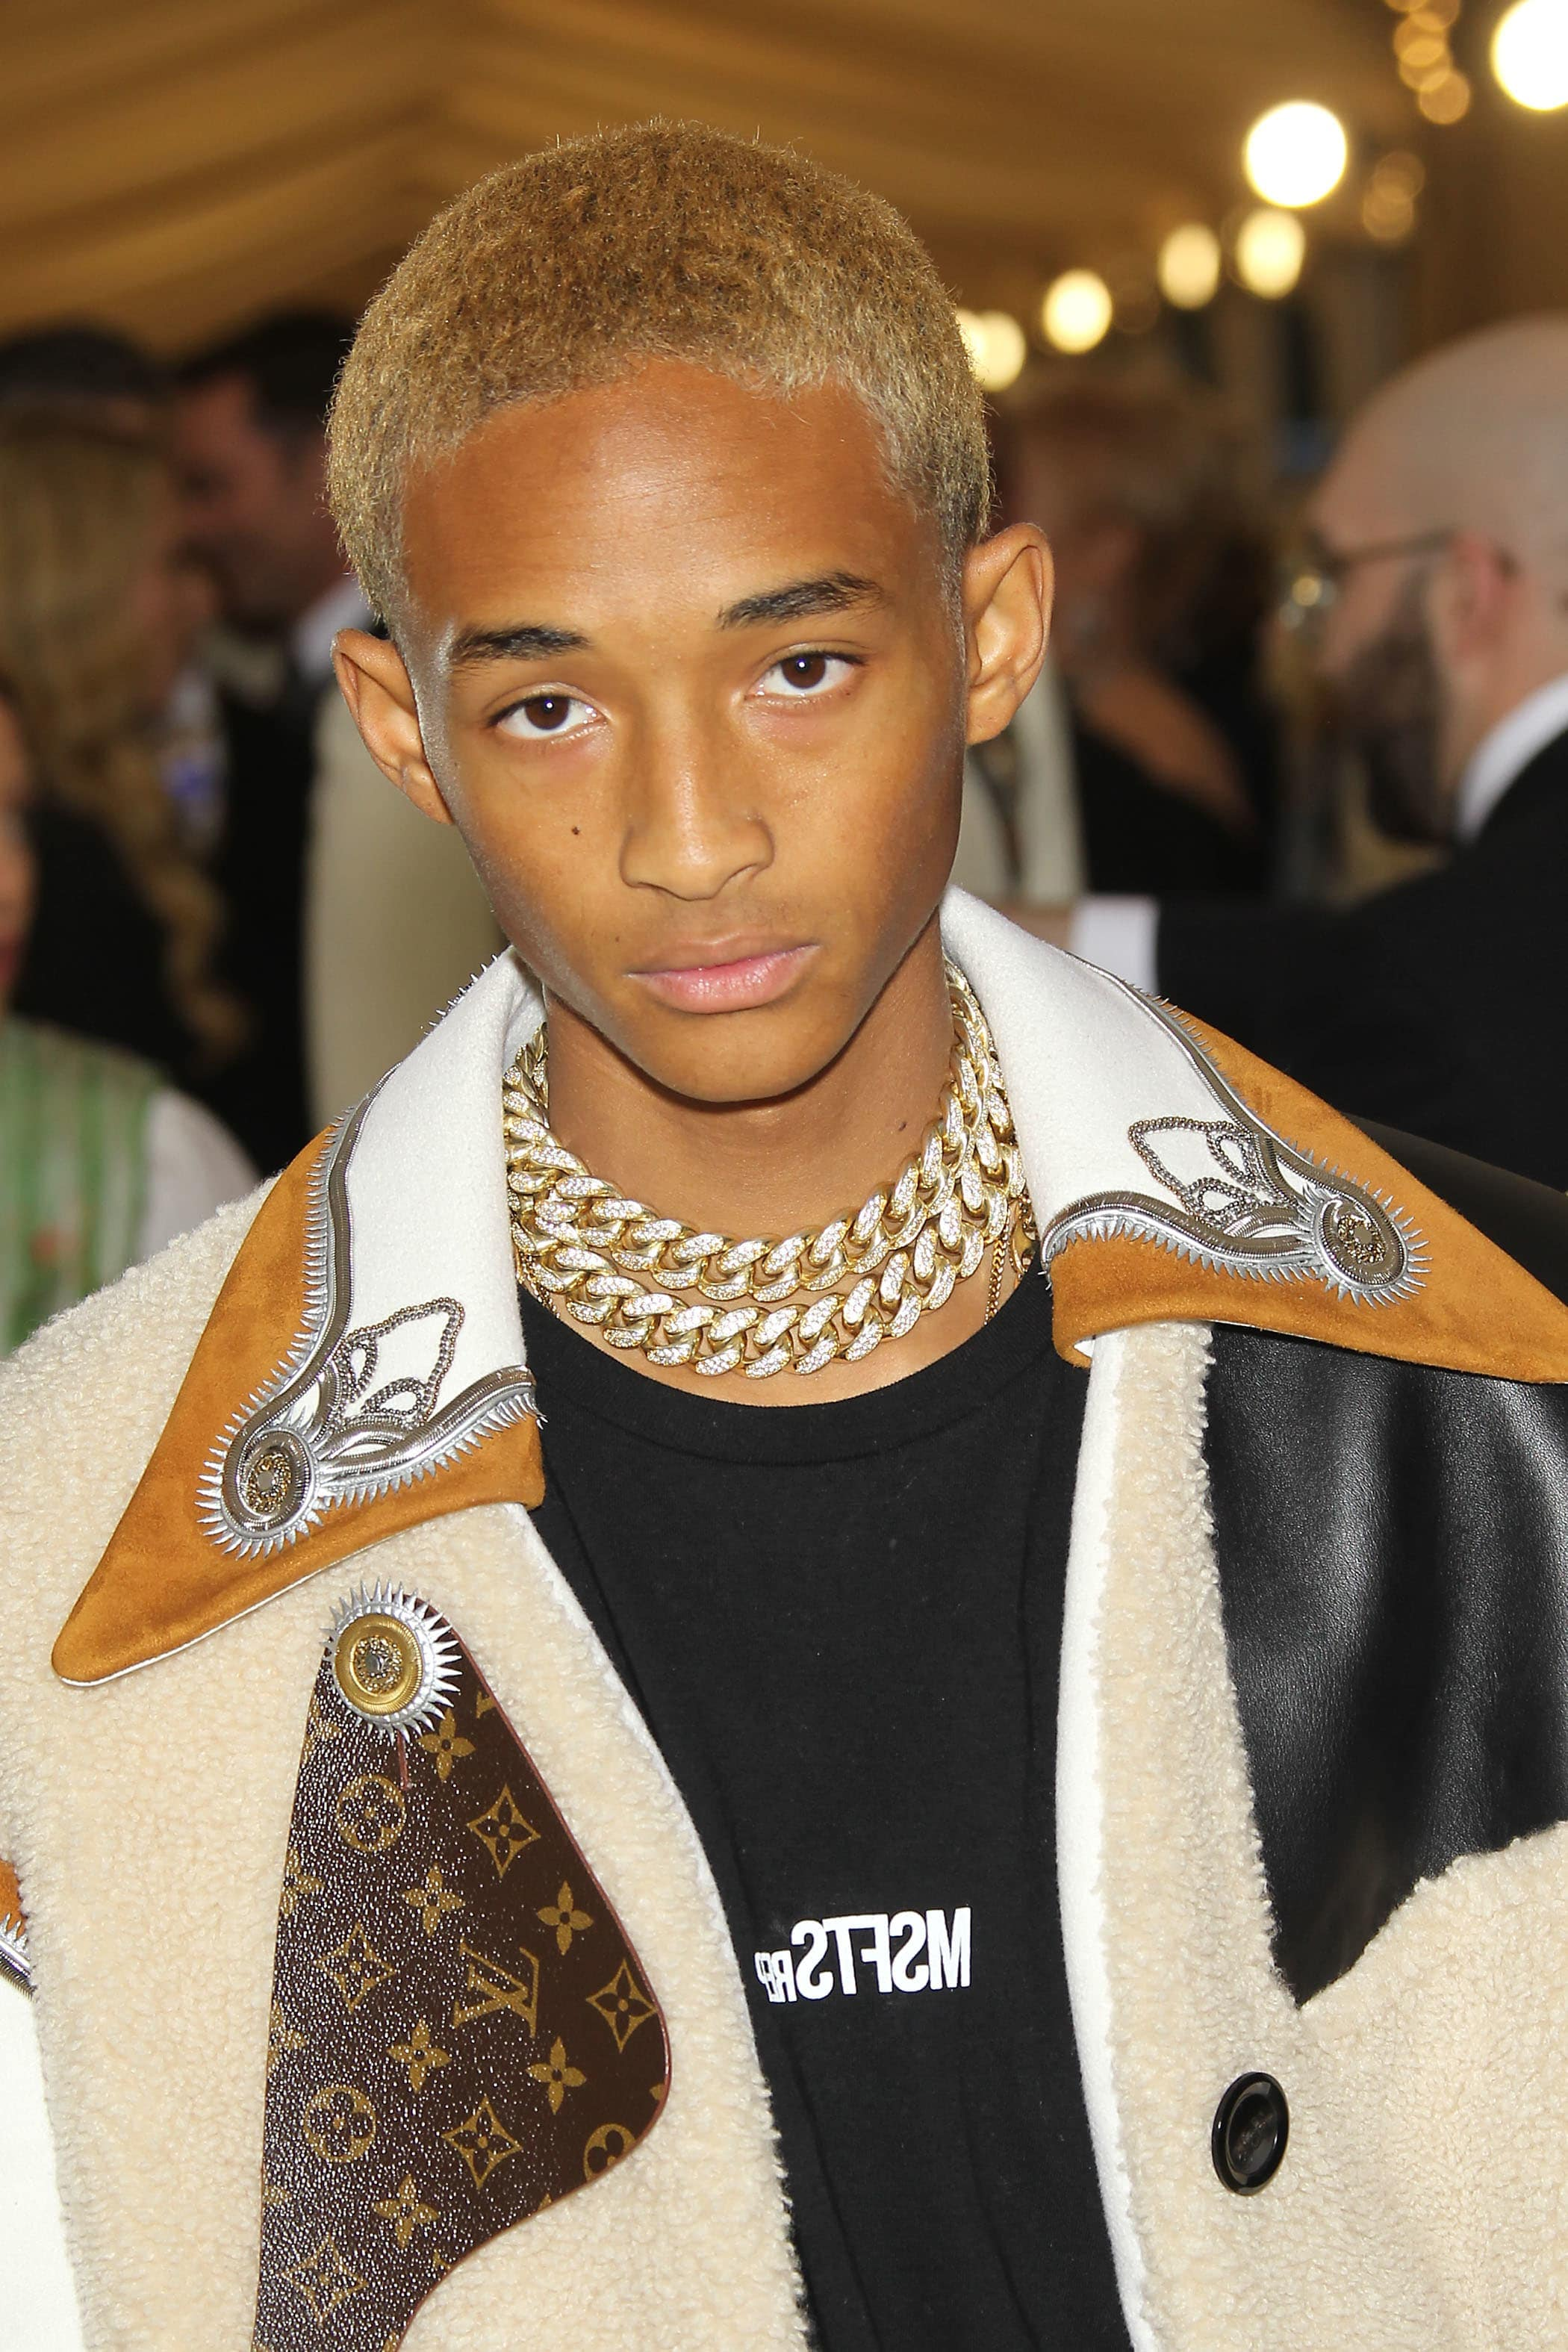 Jaden-smith-gold-buzz cut.